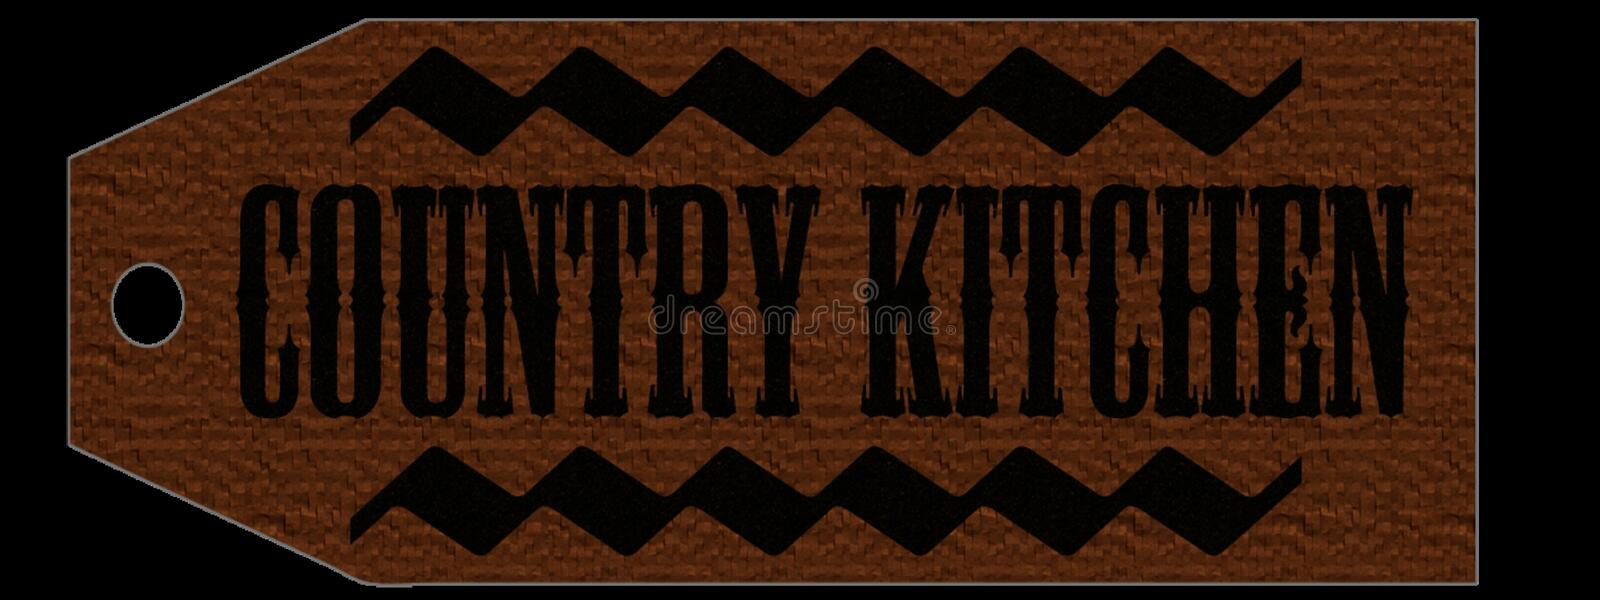 Country Kitchen Tag 2 Free Public Domain Cc0 Image